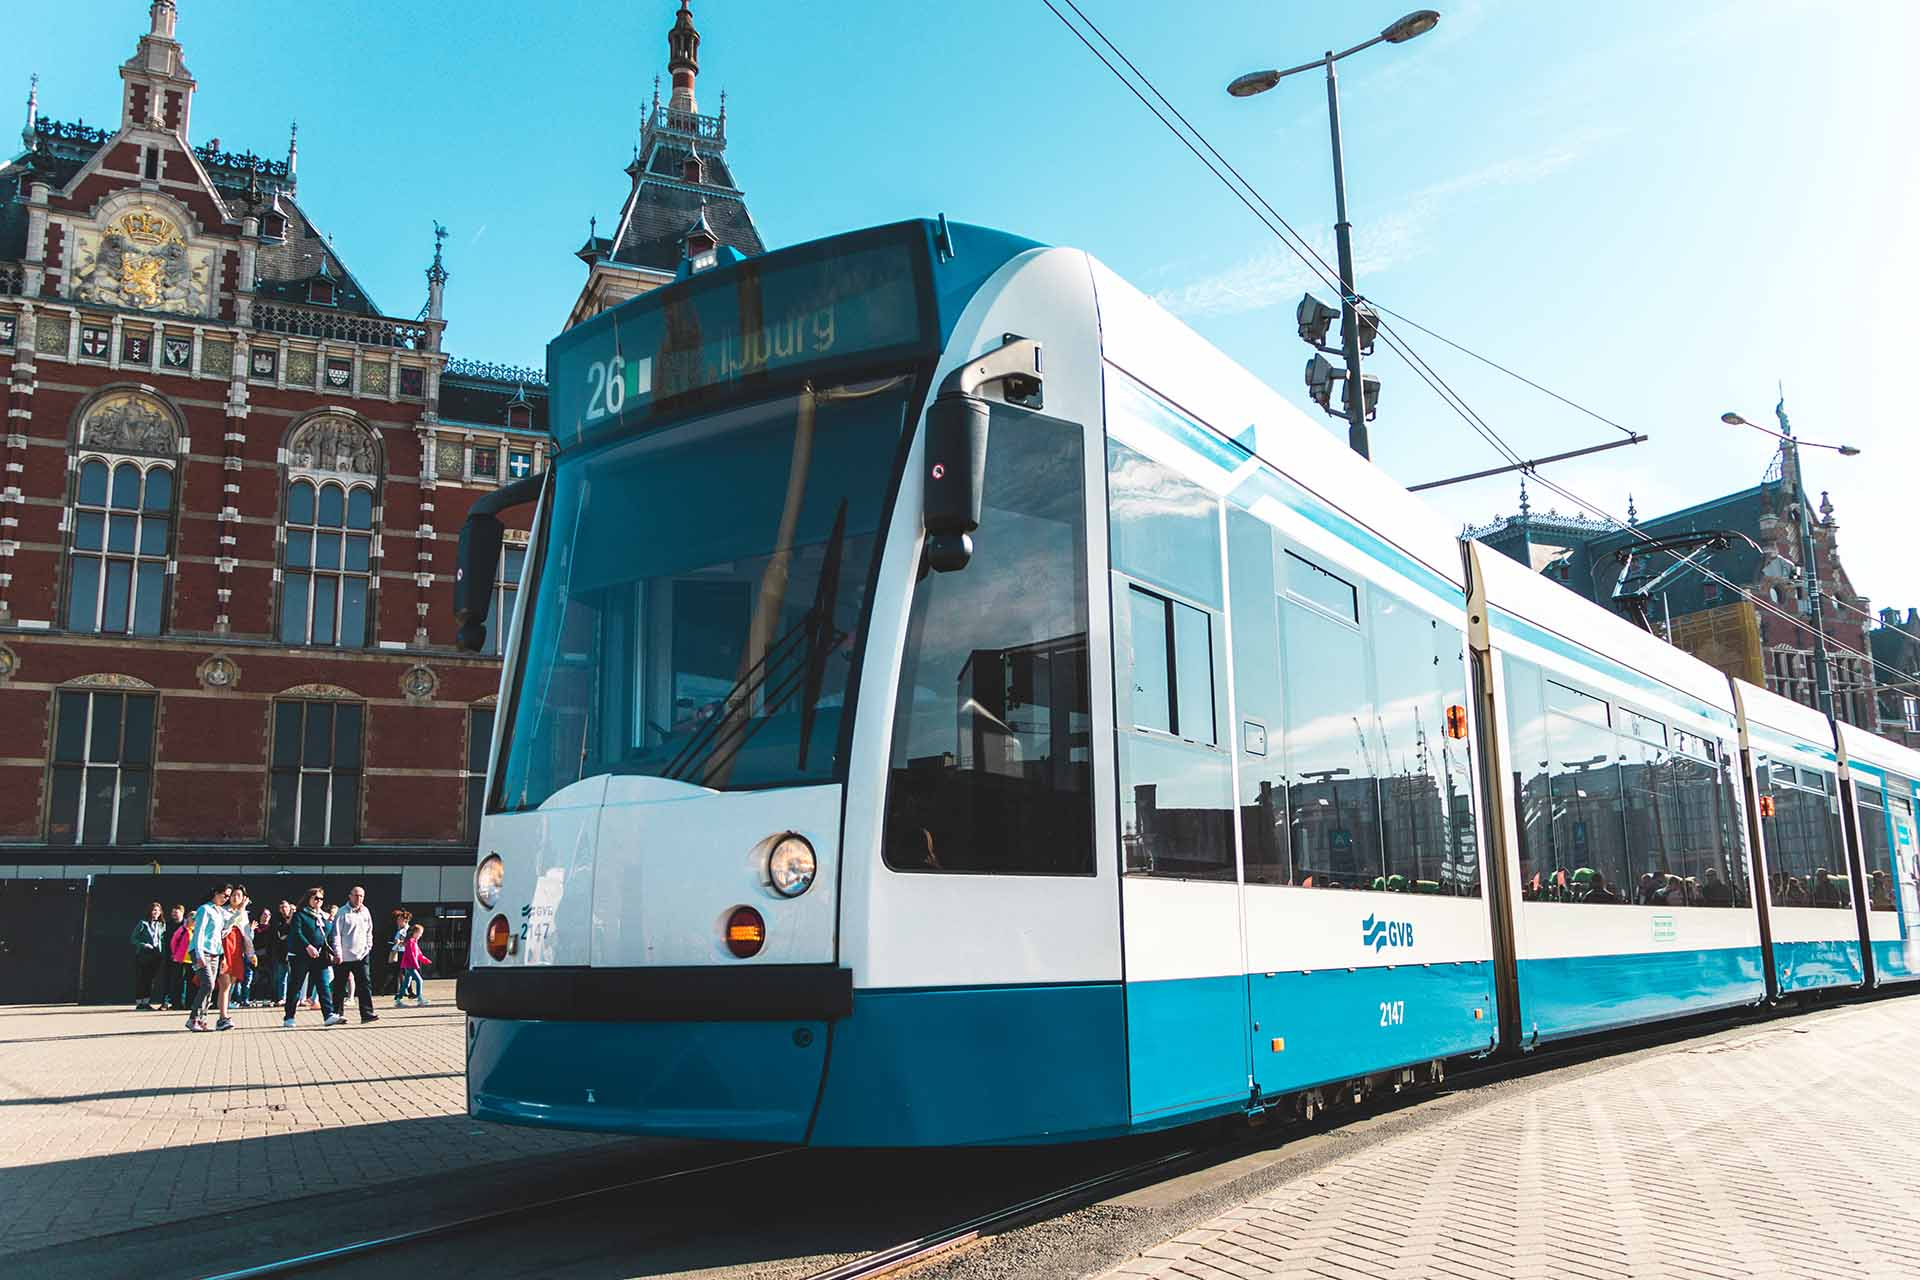 Tram at Central Station